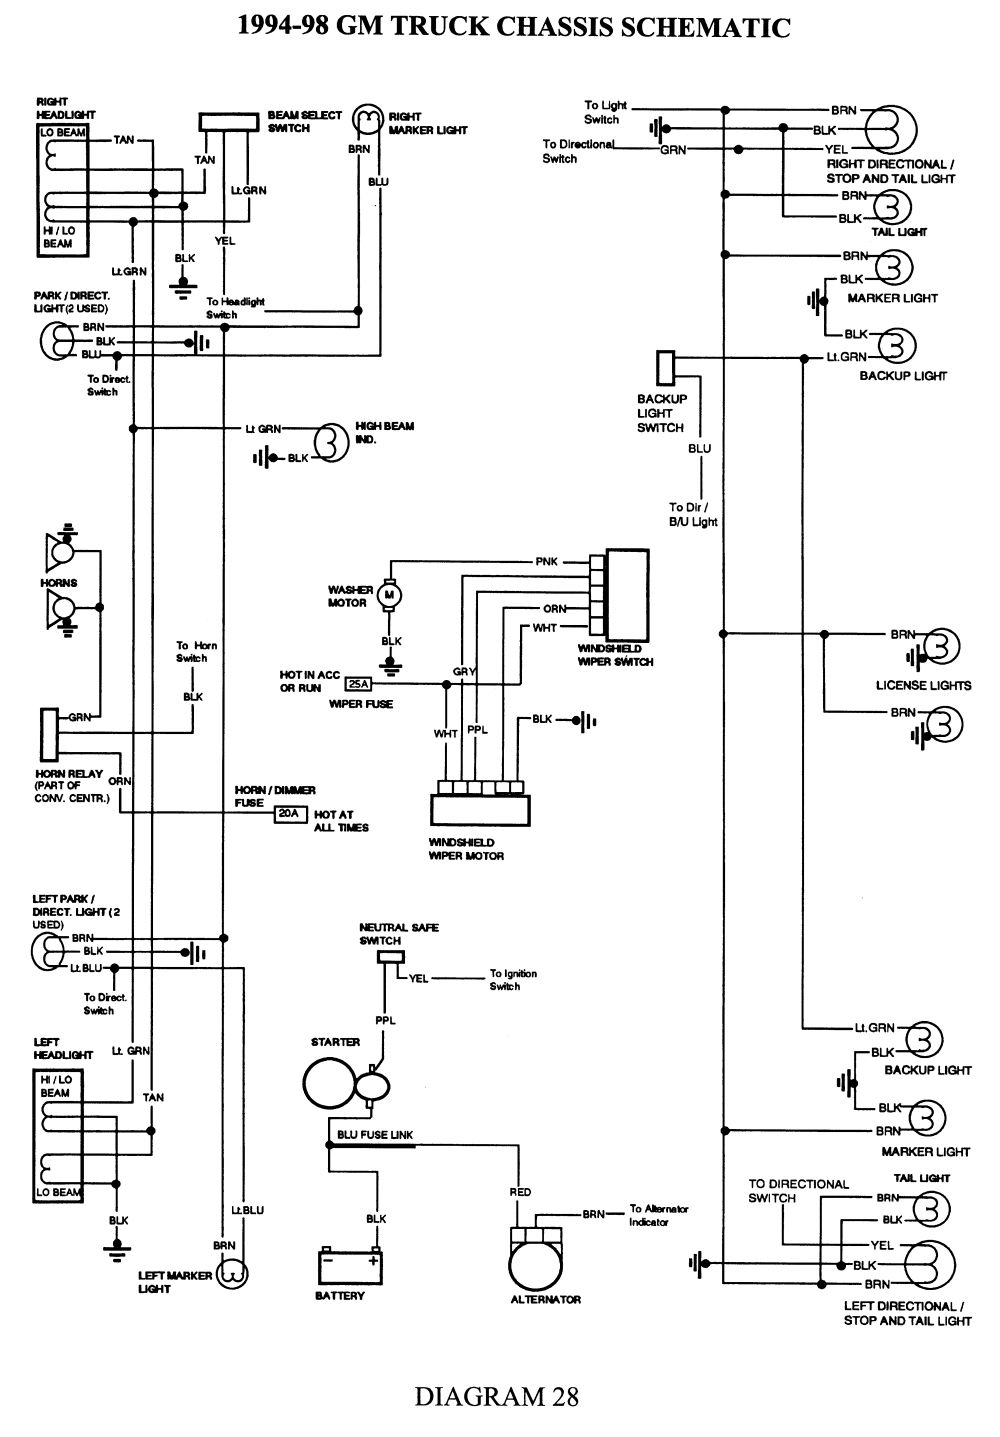 hight resolution of 1998 gmc wiring harness diagram schematic wiring diagrams rh 33 koch foerderbandtrommeln de gmc trailer wiring harness 1956 gmc wiring harness